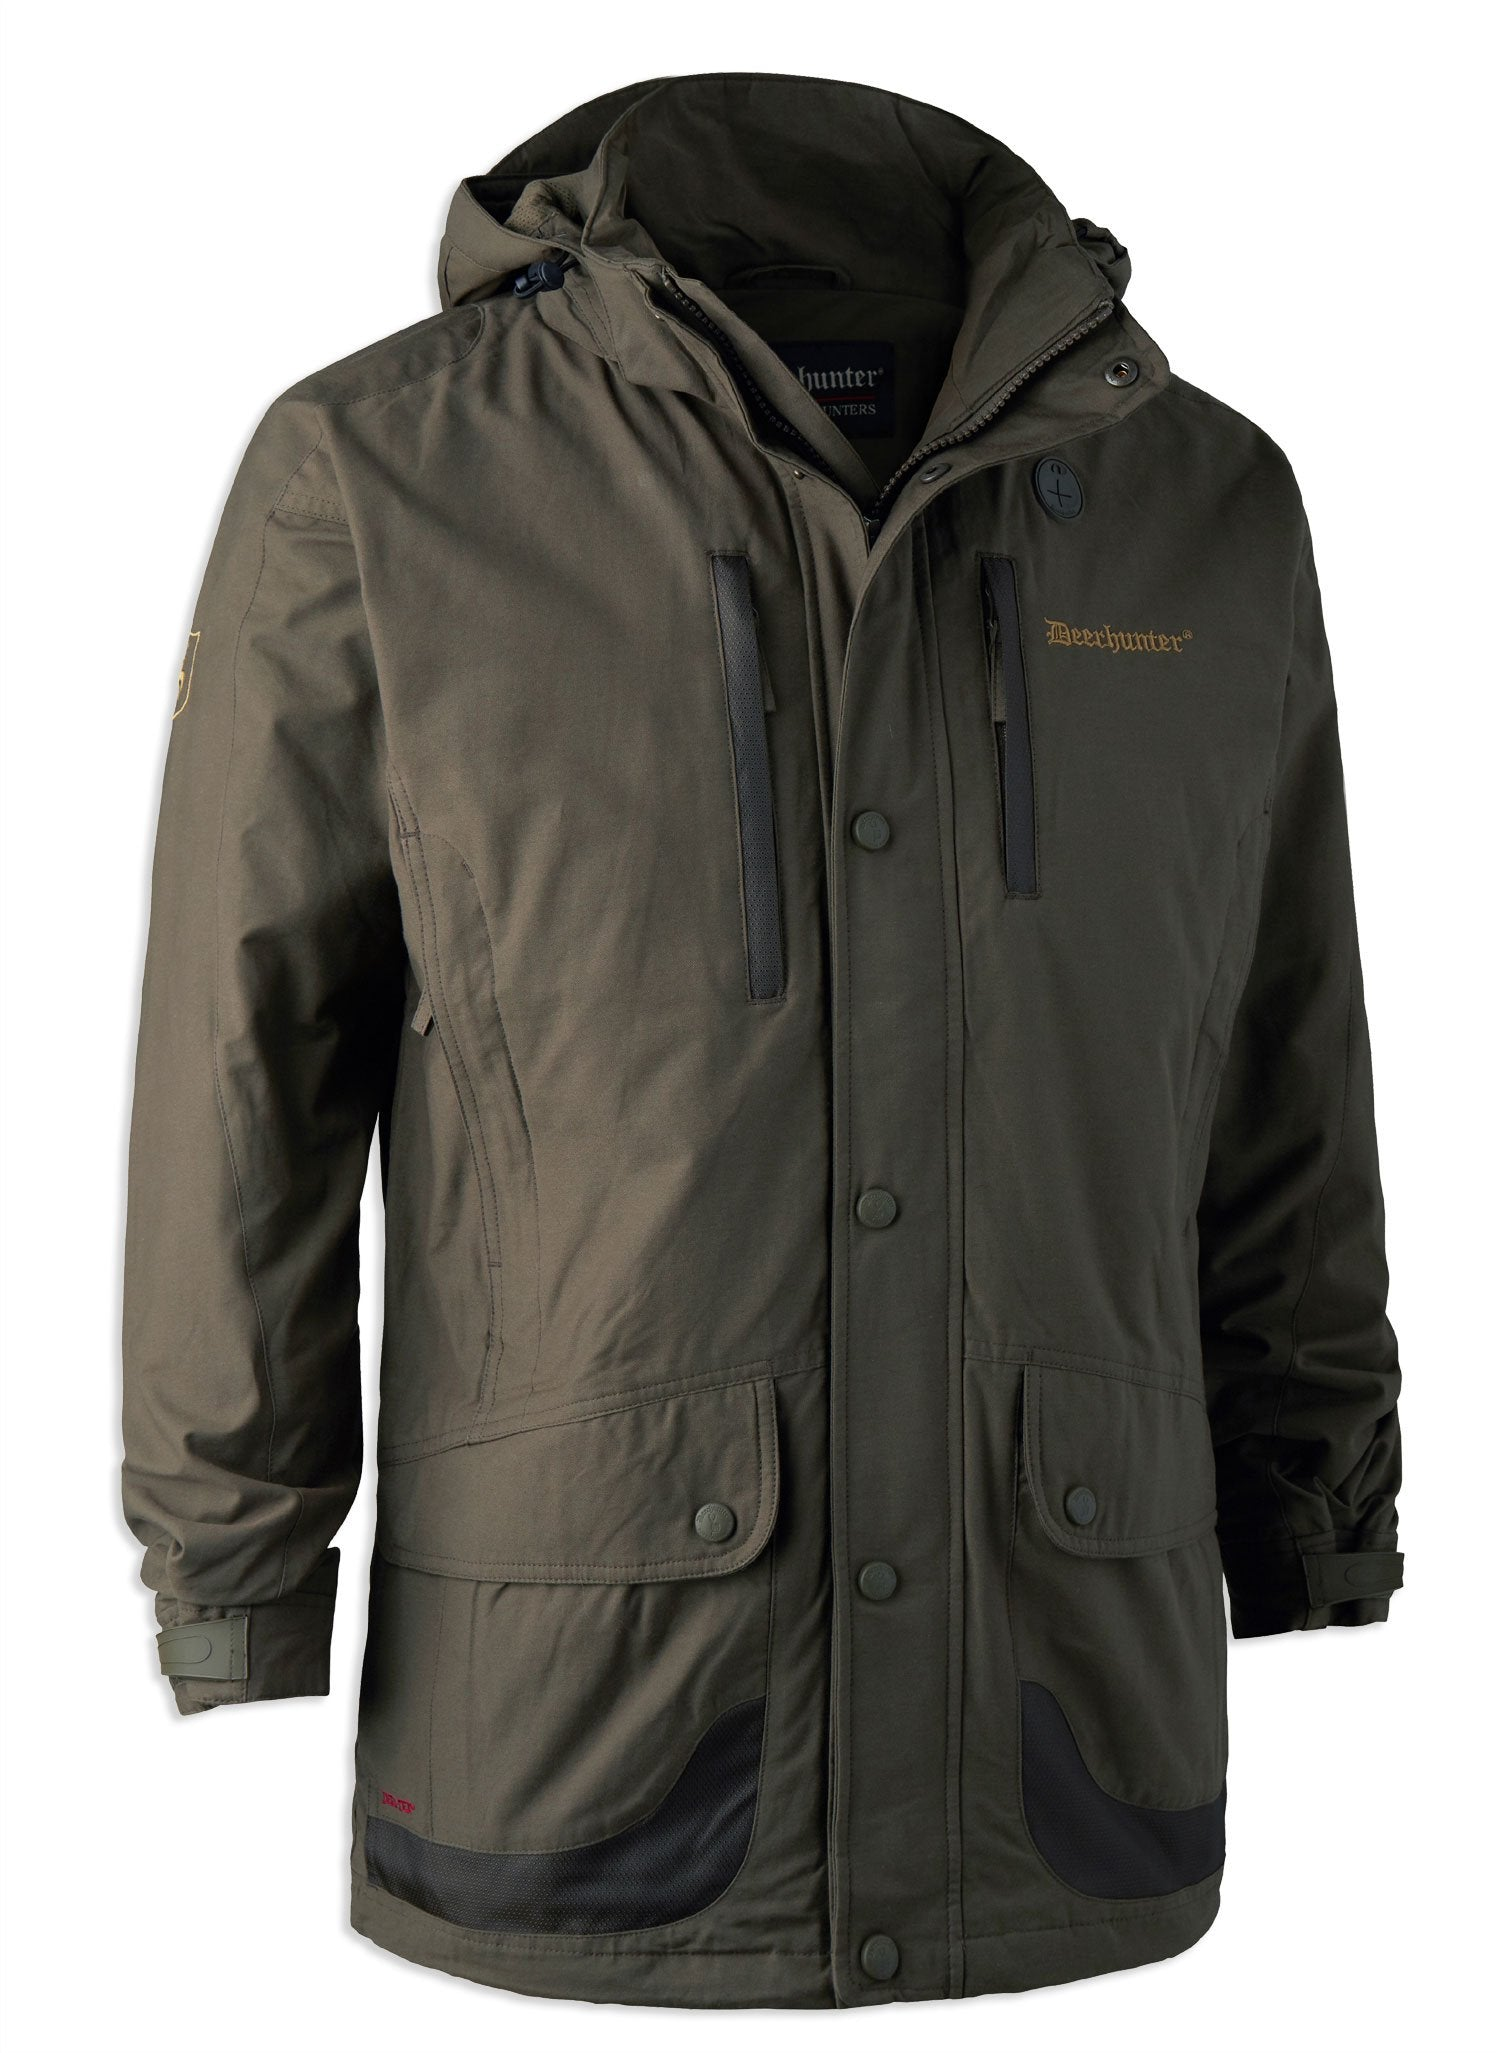 Deerhunter Upland Jacket | Canteen Green